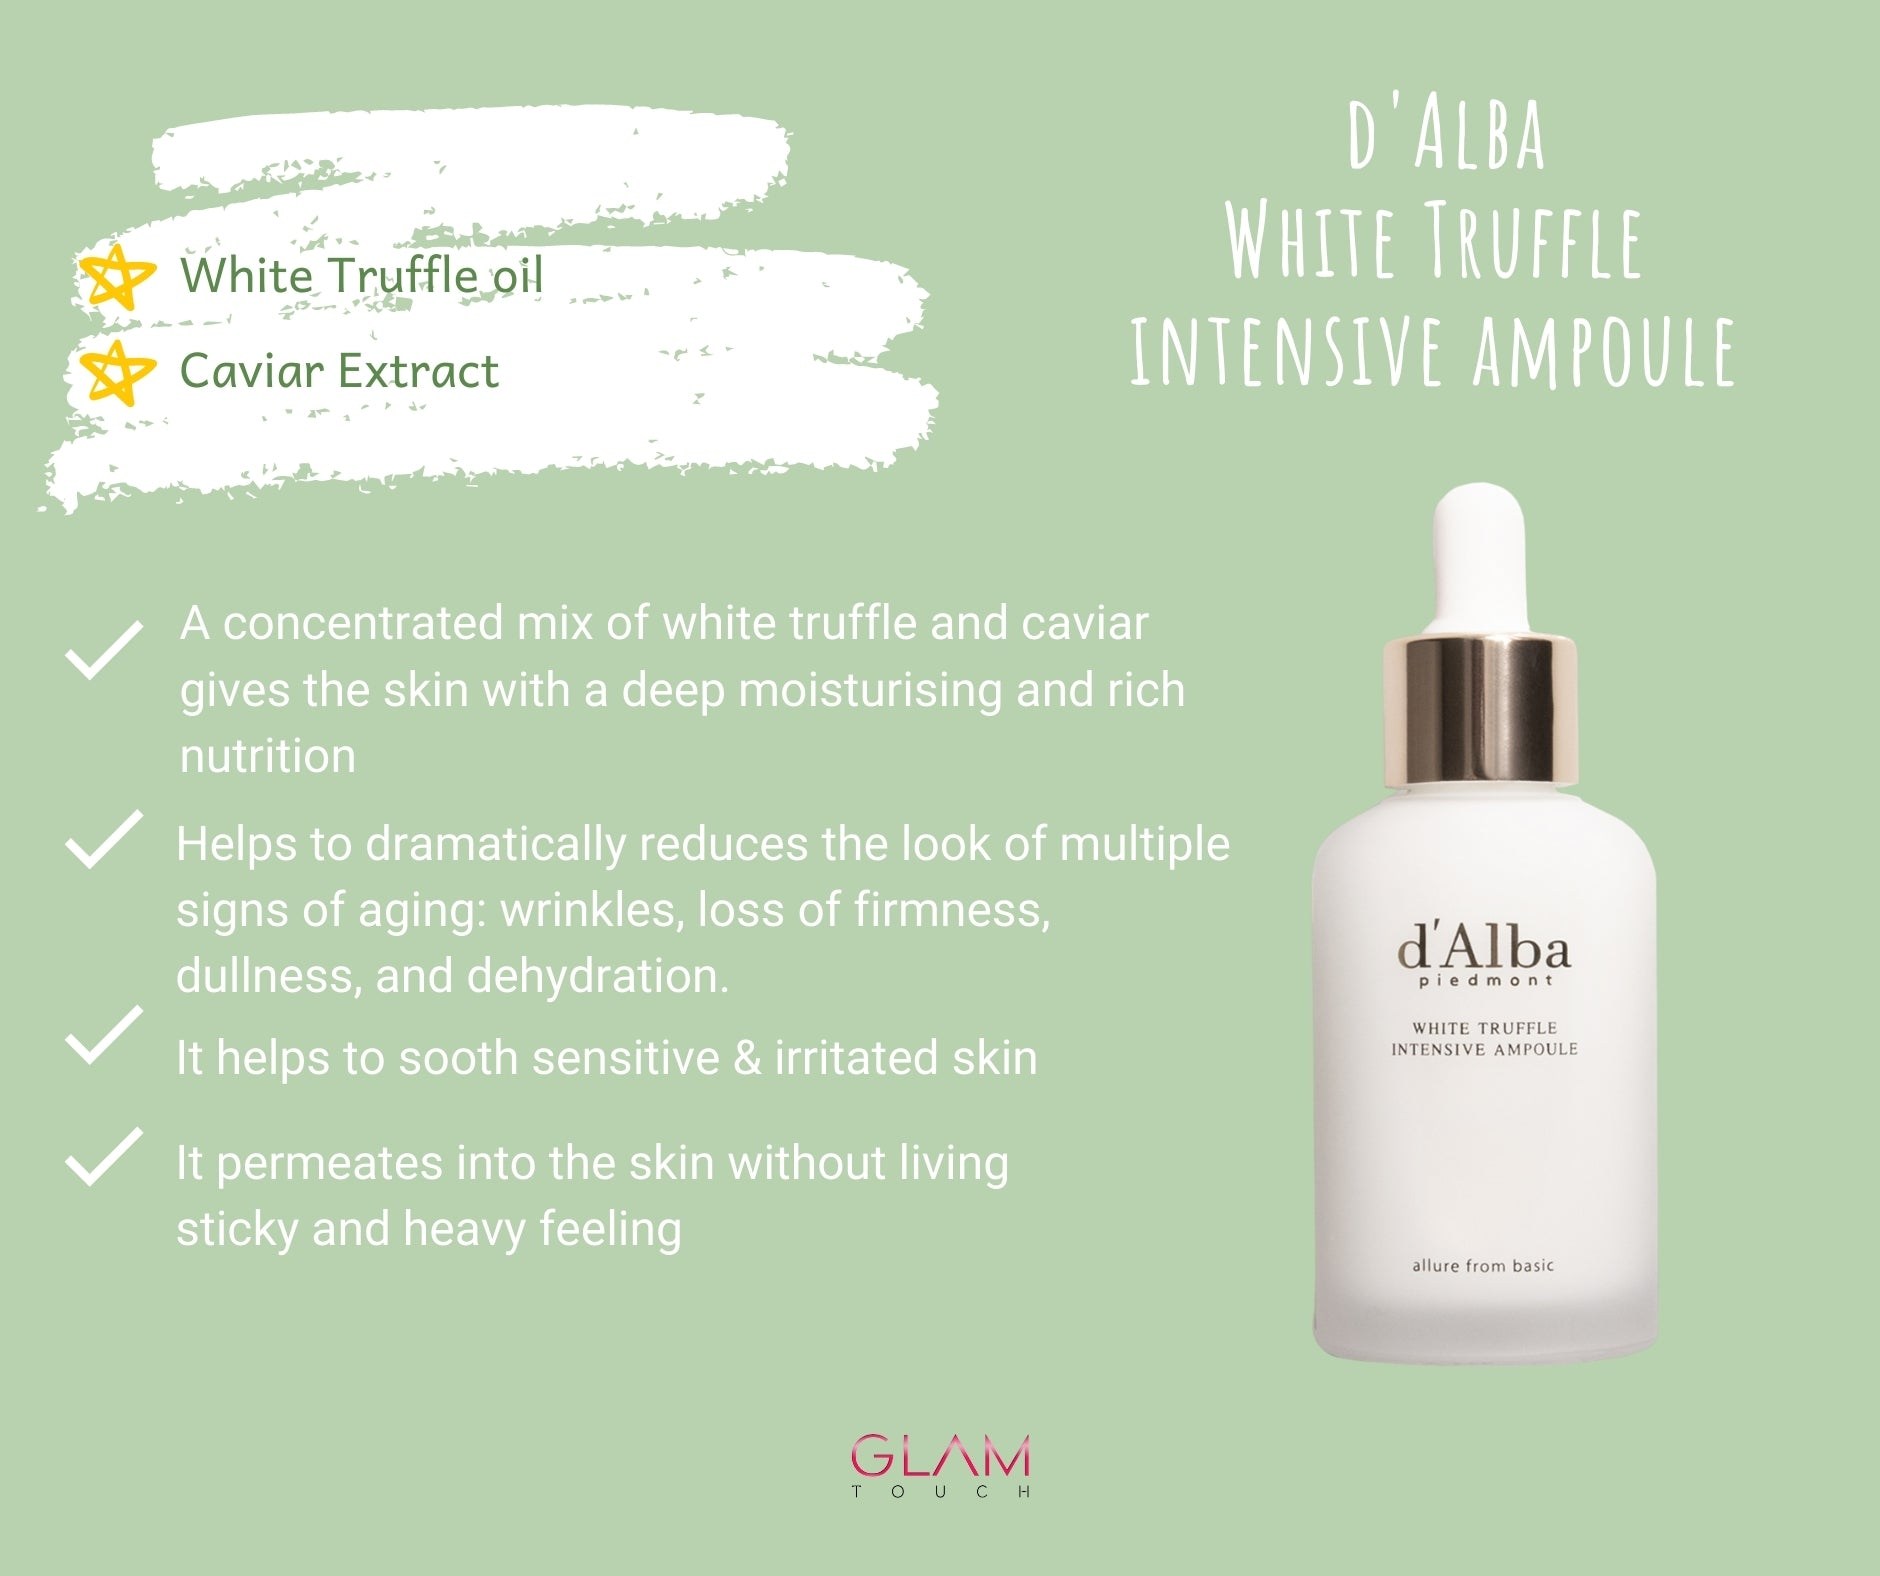 D'ALBA PIEDMONT White Truffle Intensive Ampoule (50ml) Glam Touch UK